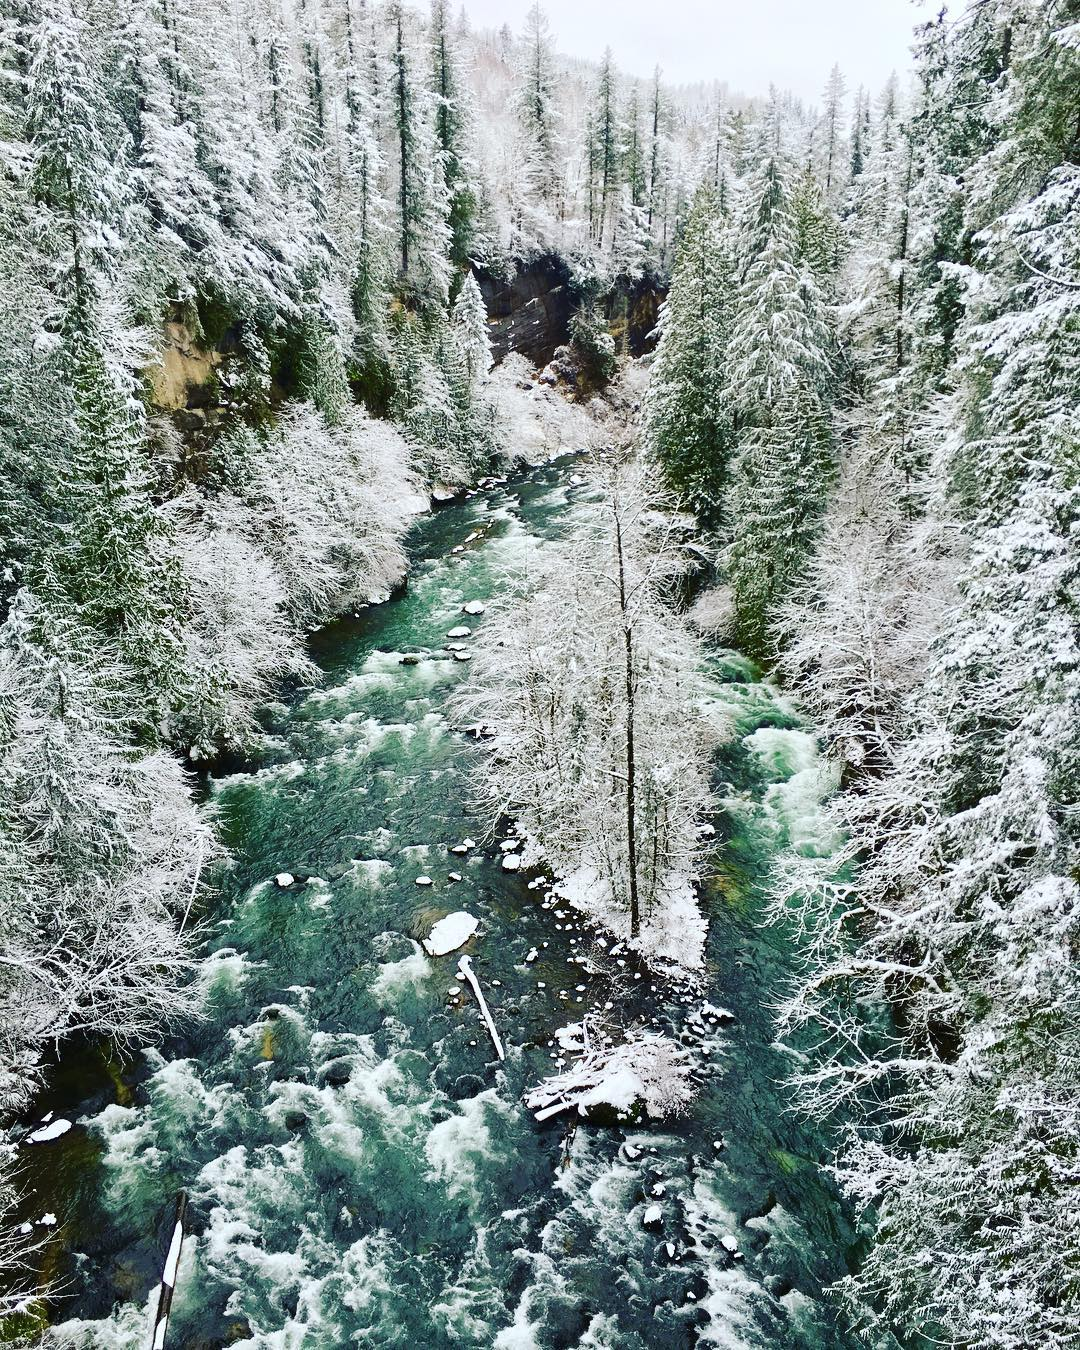 Green River Gorge in the snow